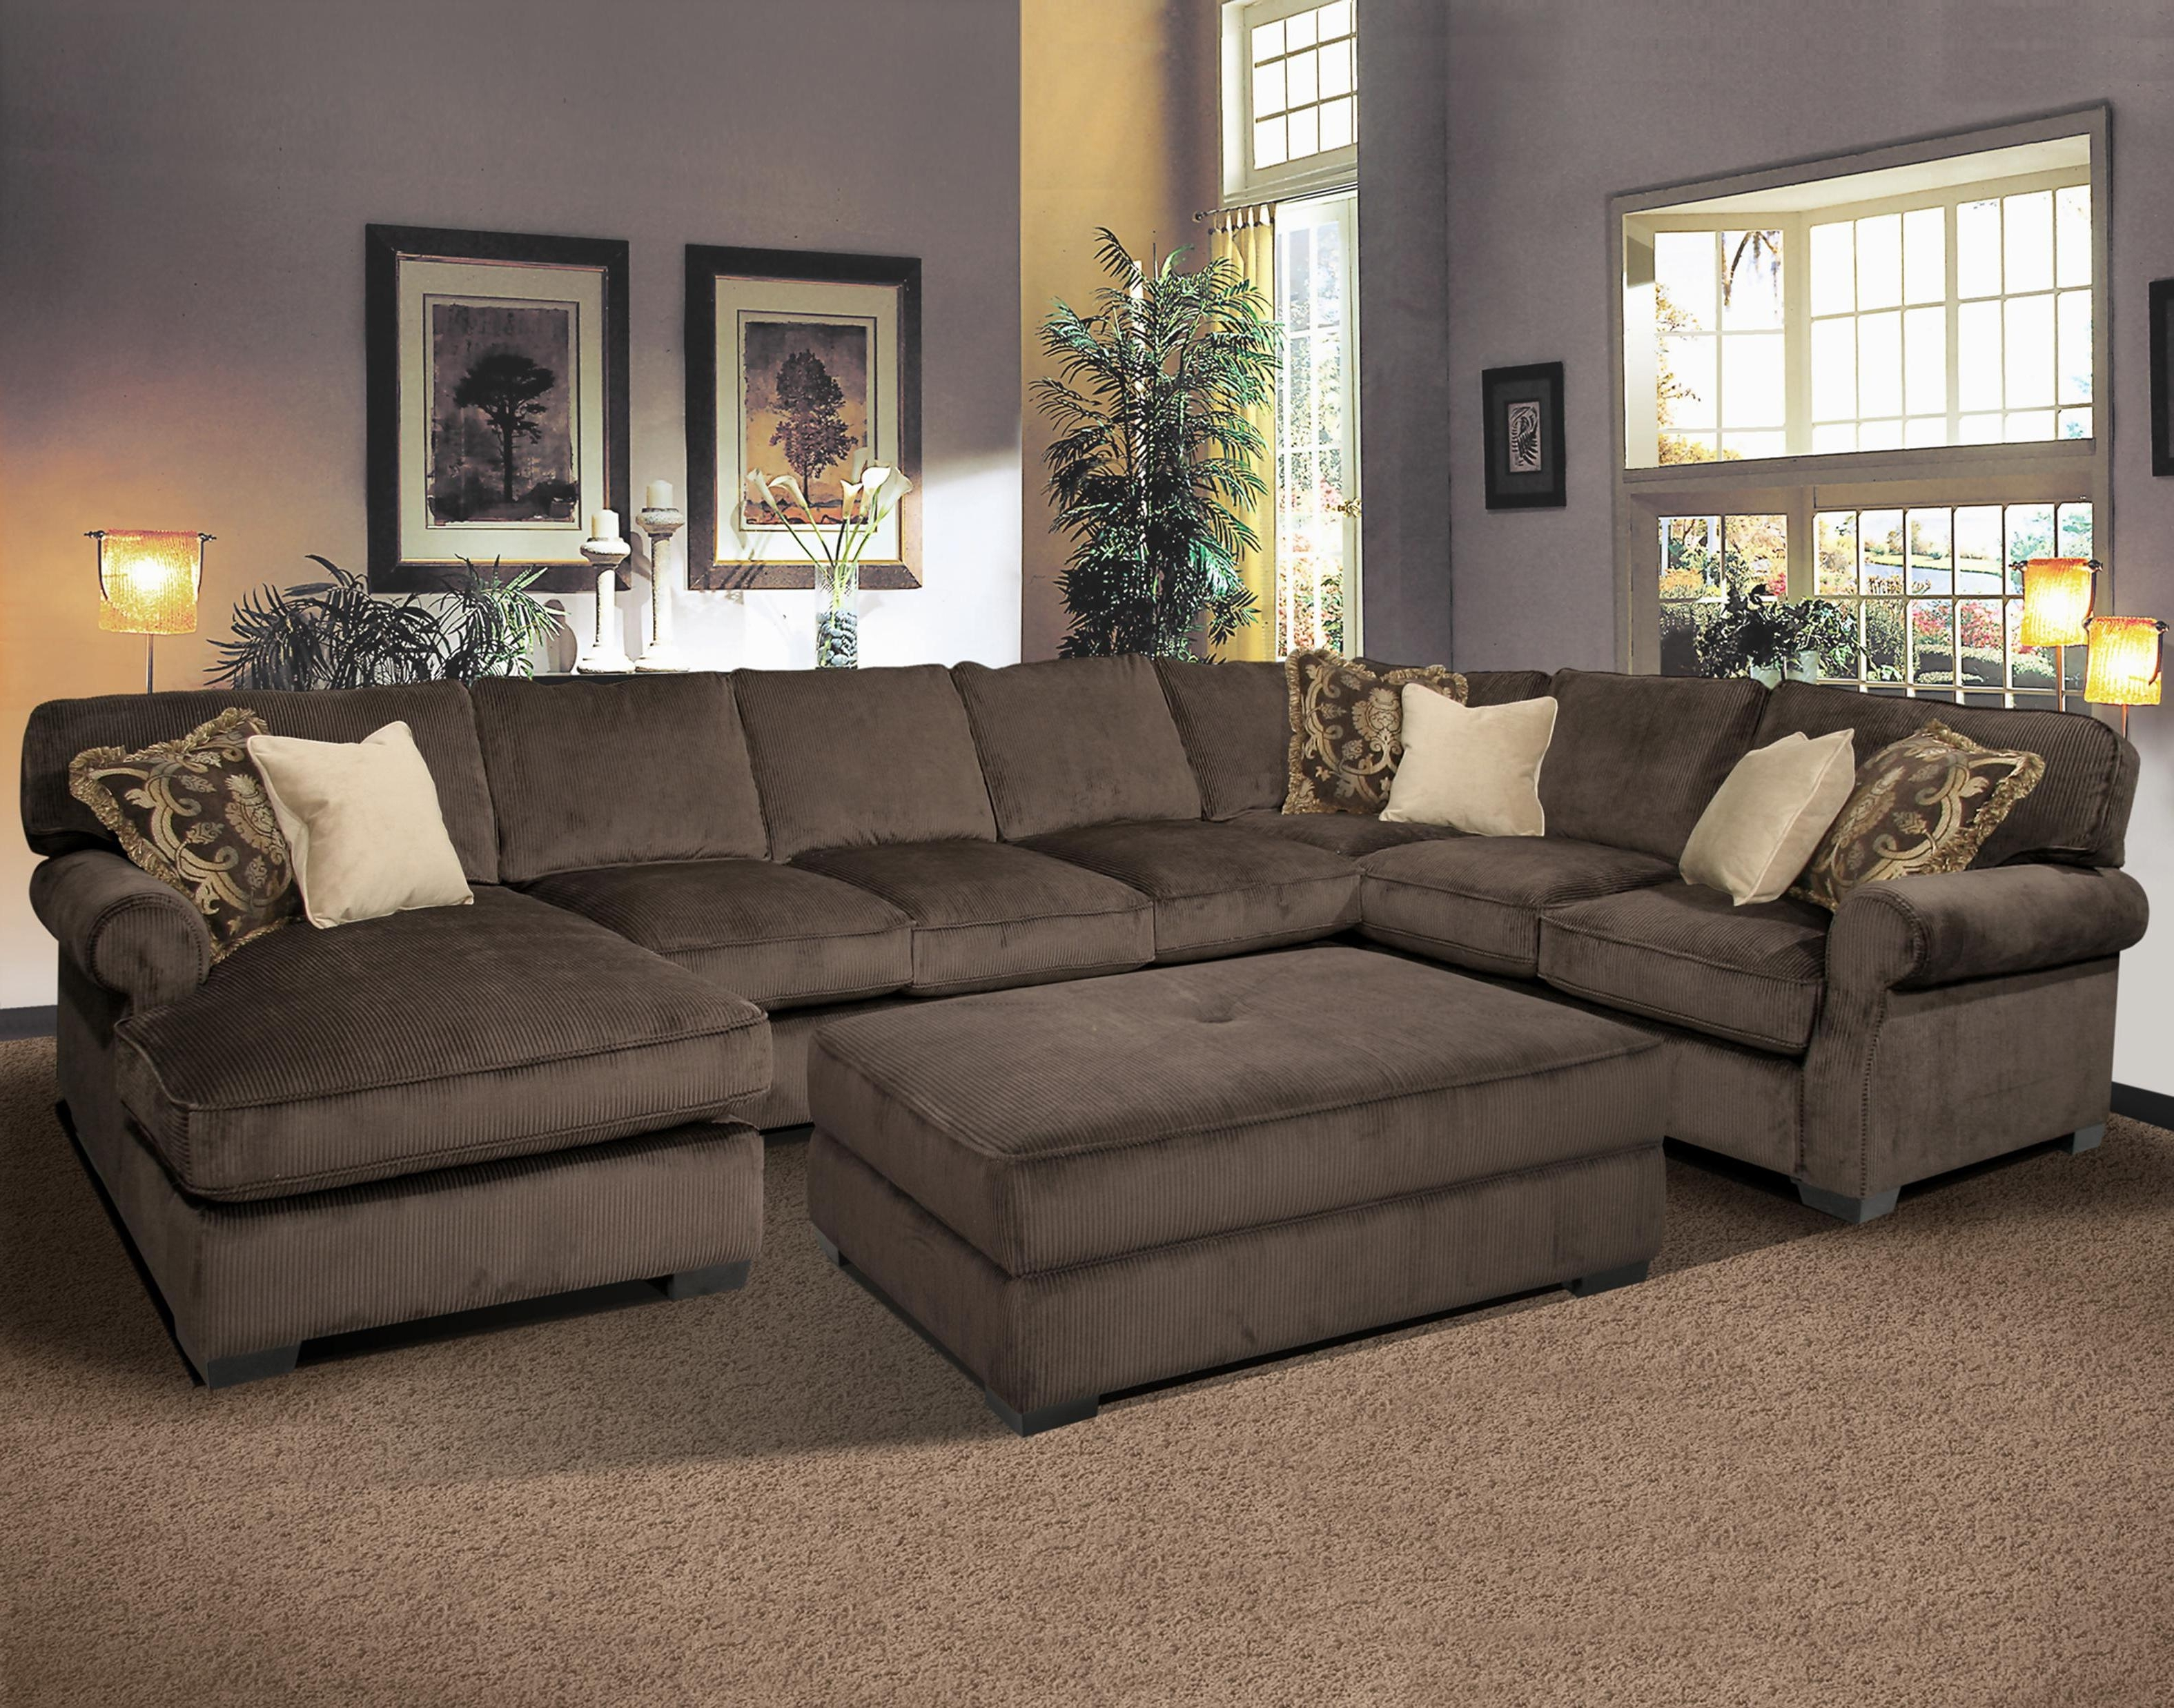 denim couches cindy set clearance sectionals sectional design sofas sofa beachside leather own go size your to crawford of sleeper rooms full